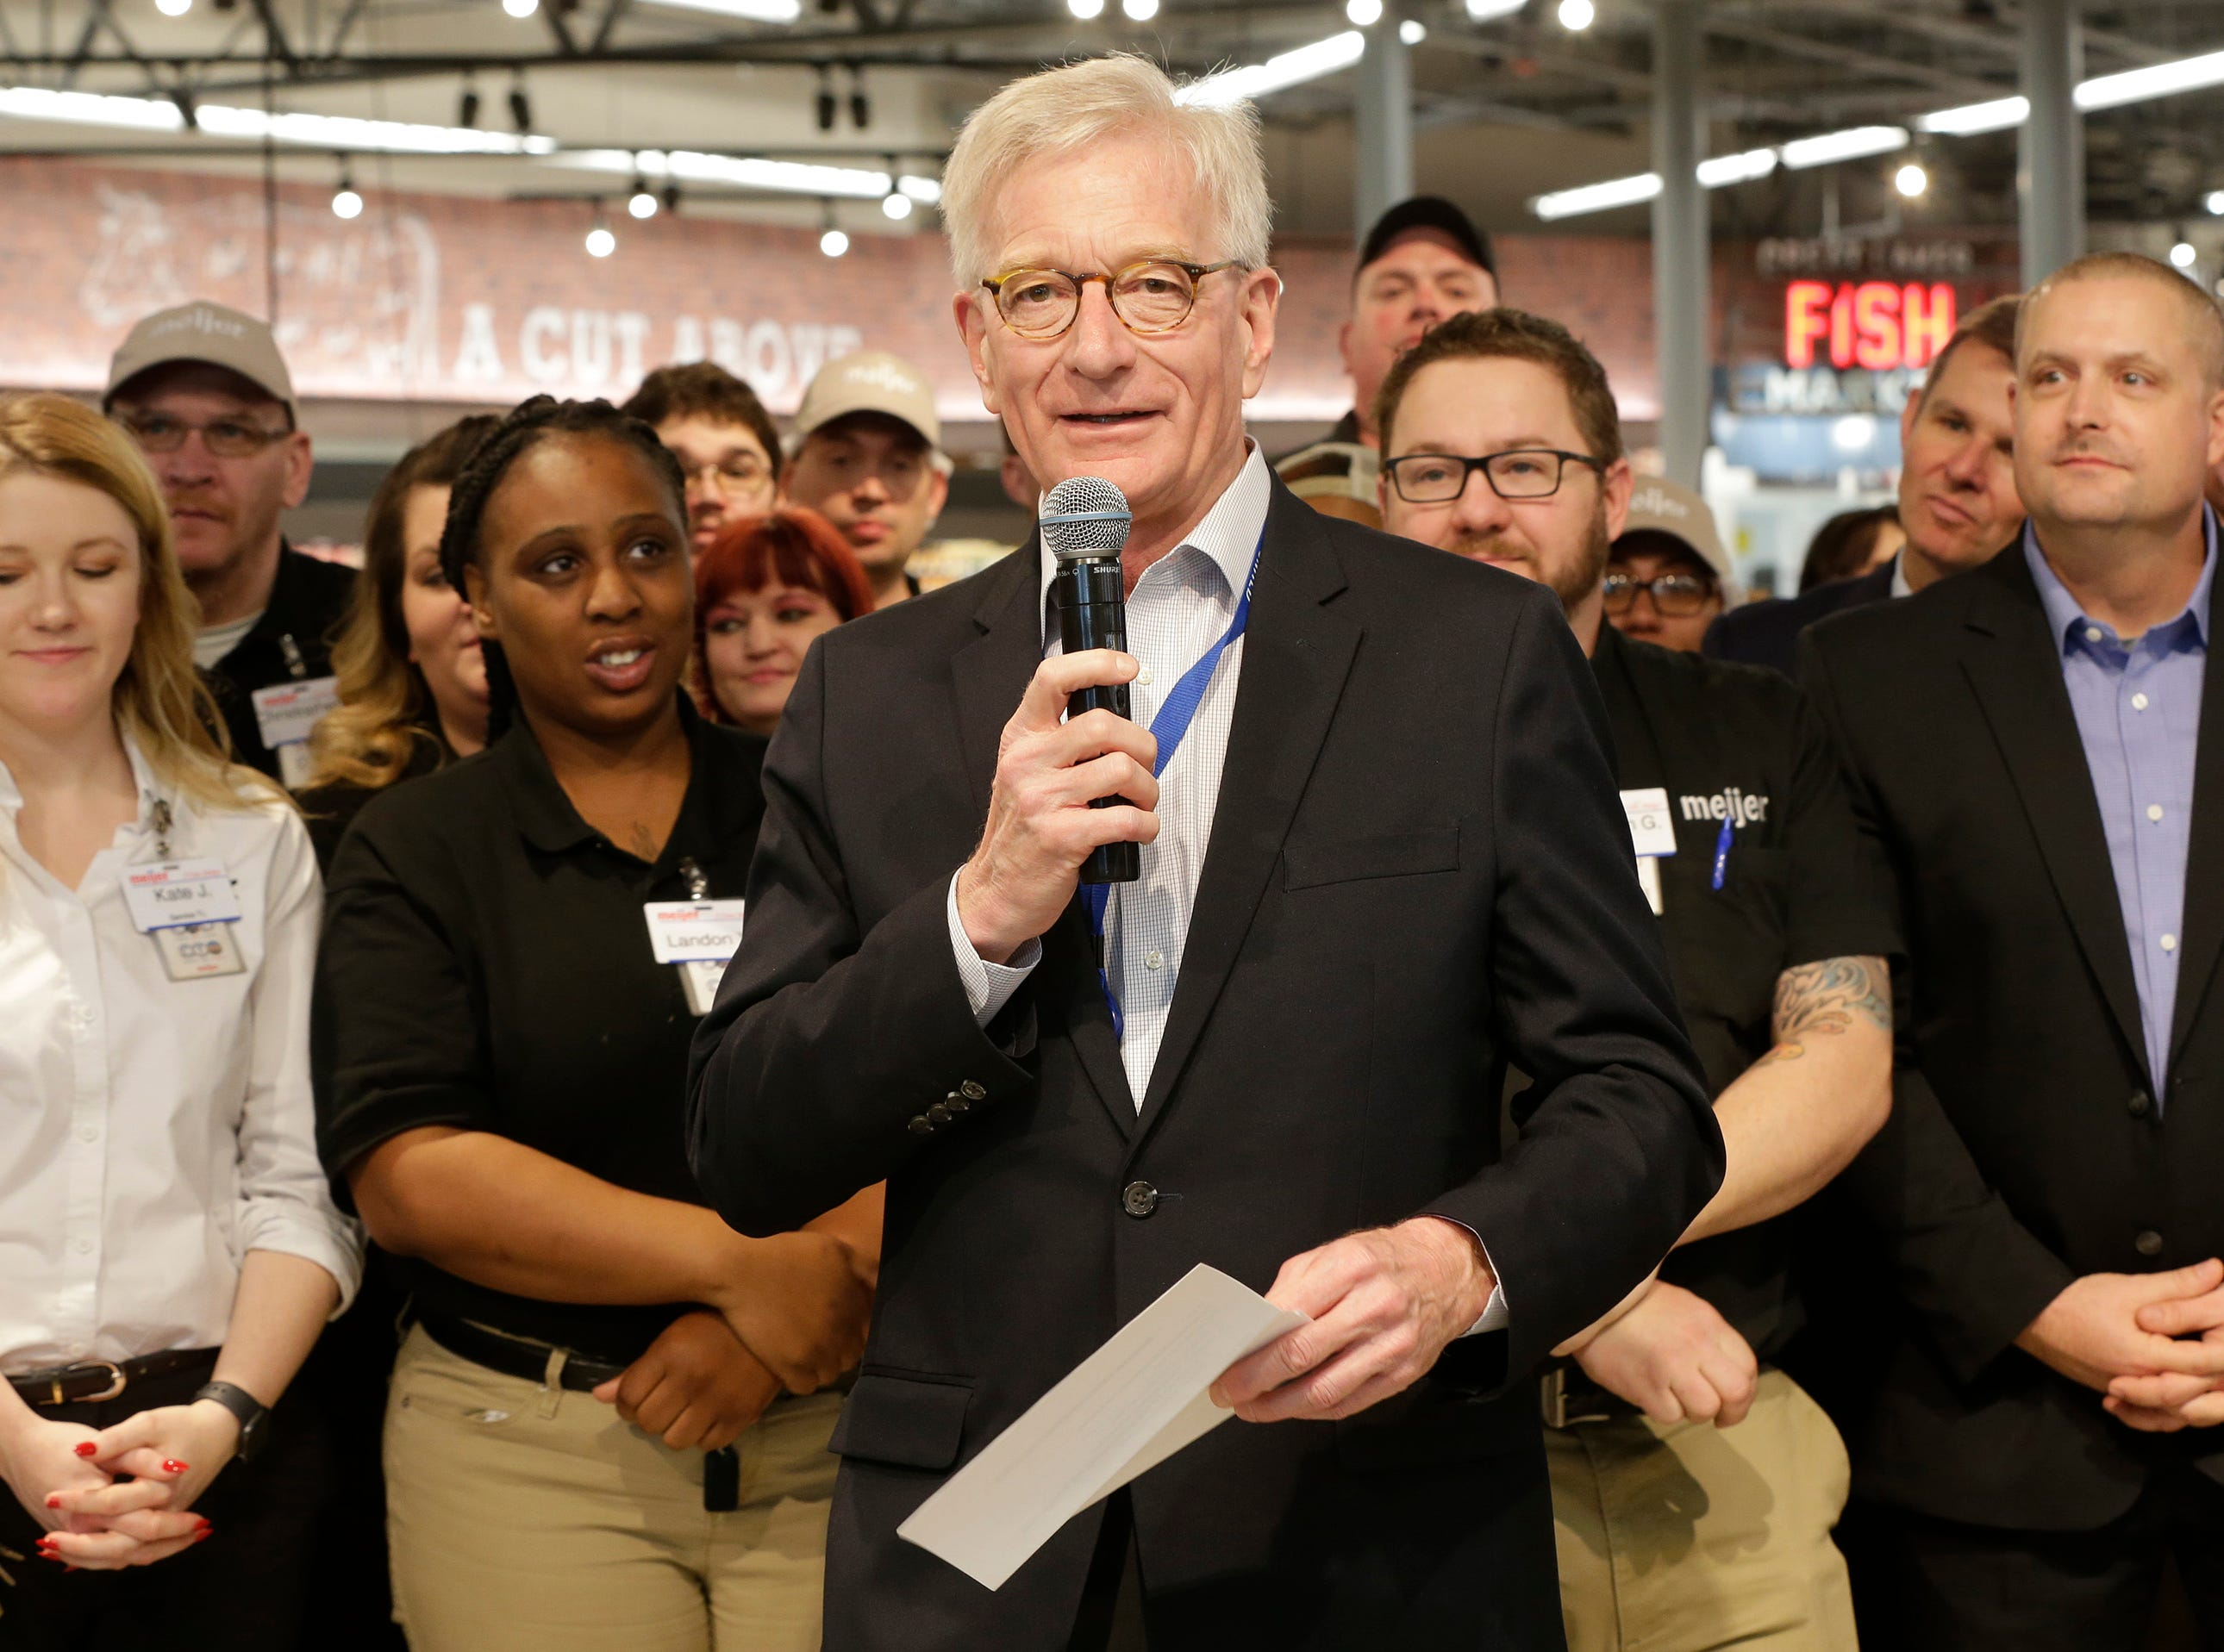 Meijer Executive Chairman Hank Meijer at Meijer, Thursday April 25, 2019, in Sheboygan, Wis. The 155,000-square-foot supercenter has 300 employees on opening day.